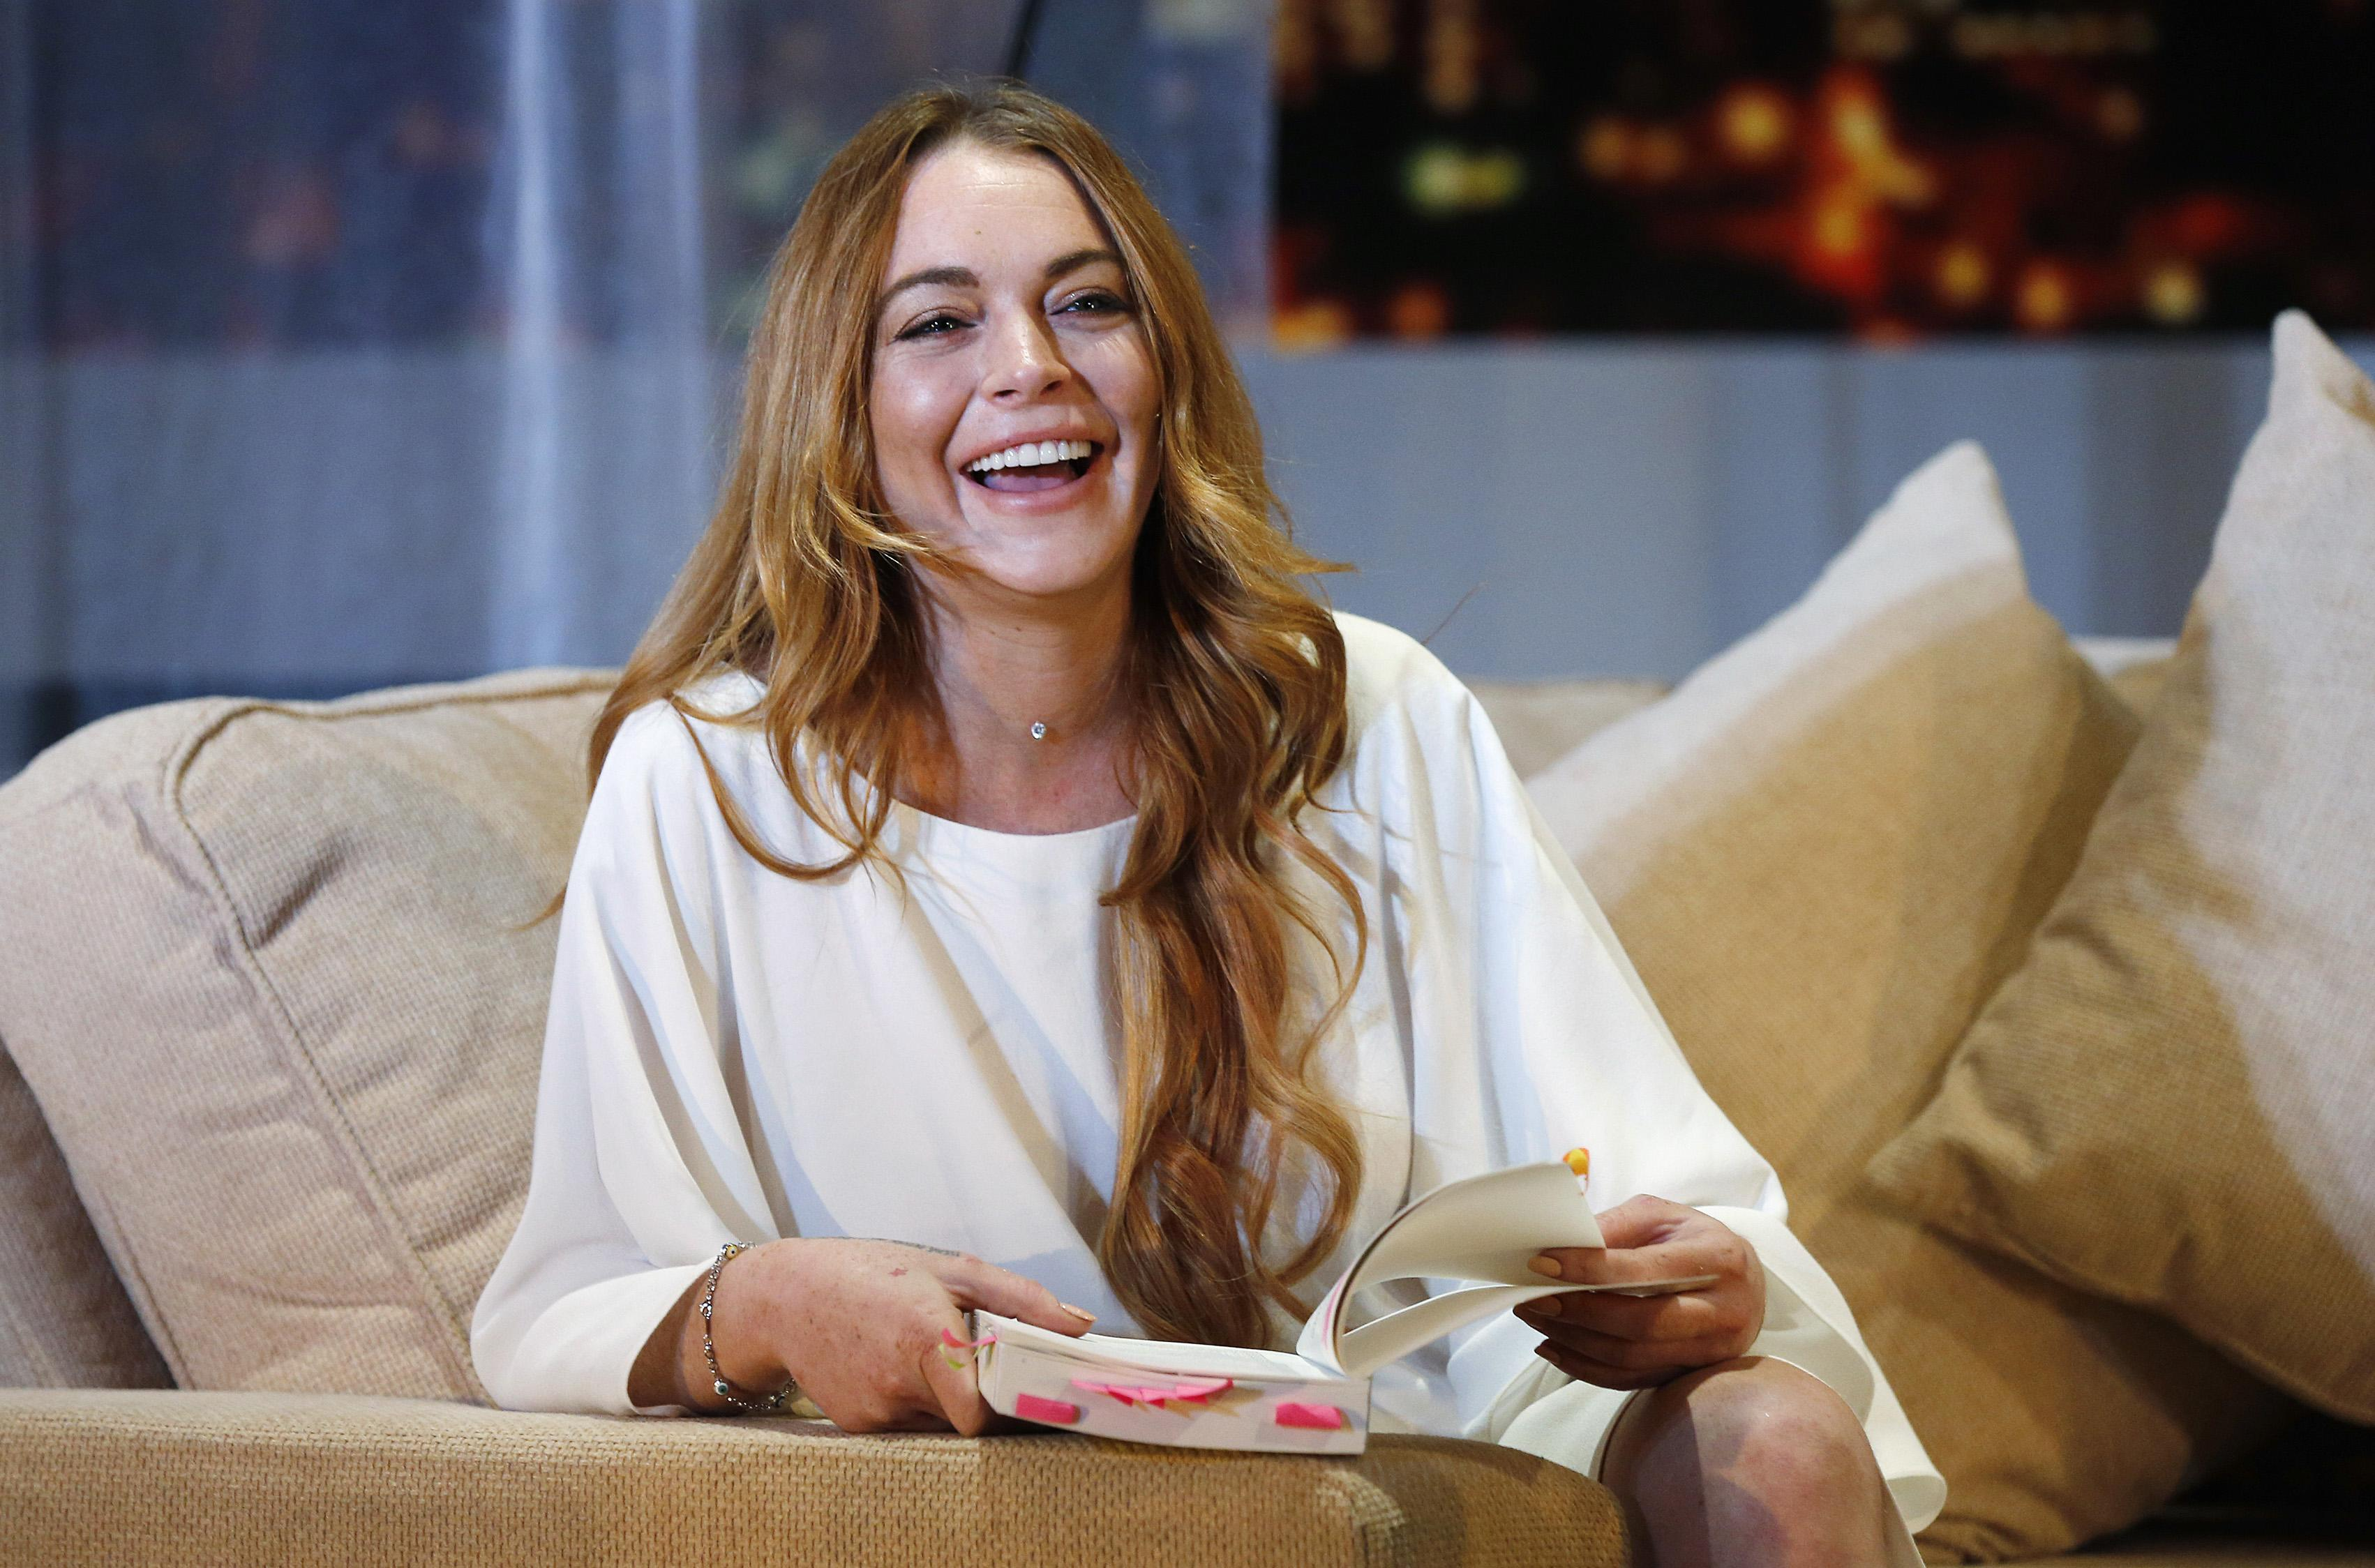 Lindsay Lohan appears on 'The View' to discuss Syrian refugee crisis